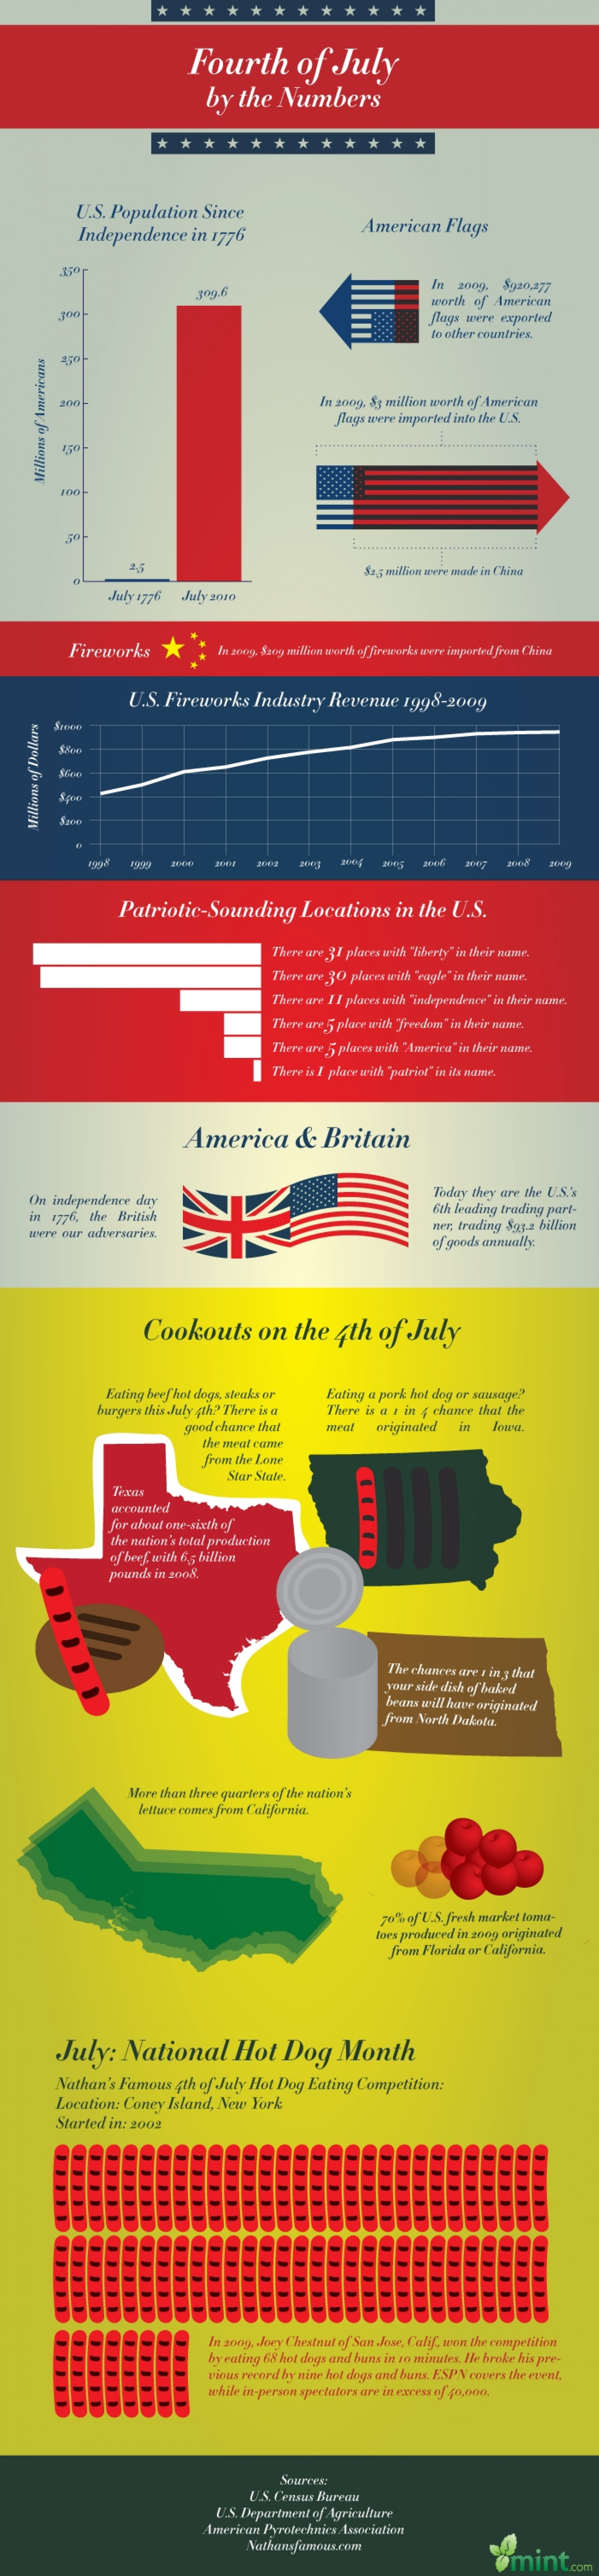 Fourth of July By The Numbers Infographic